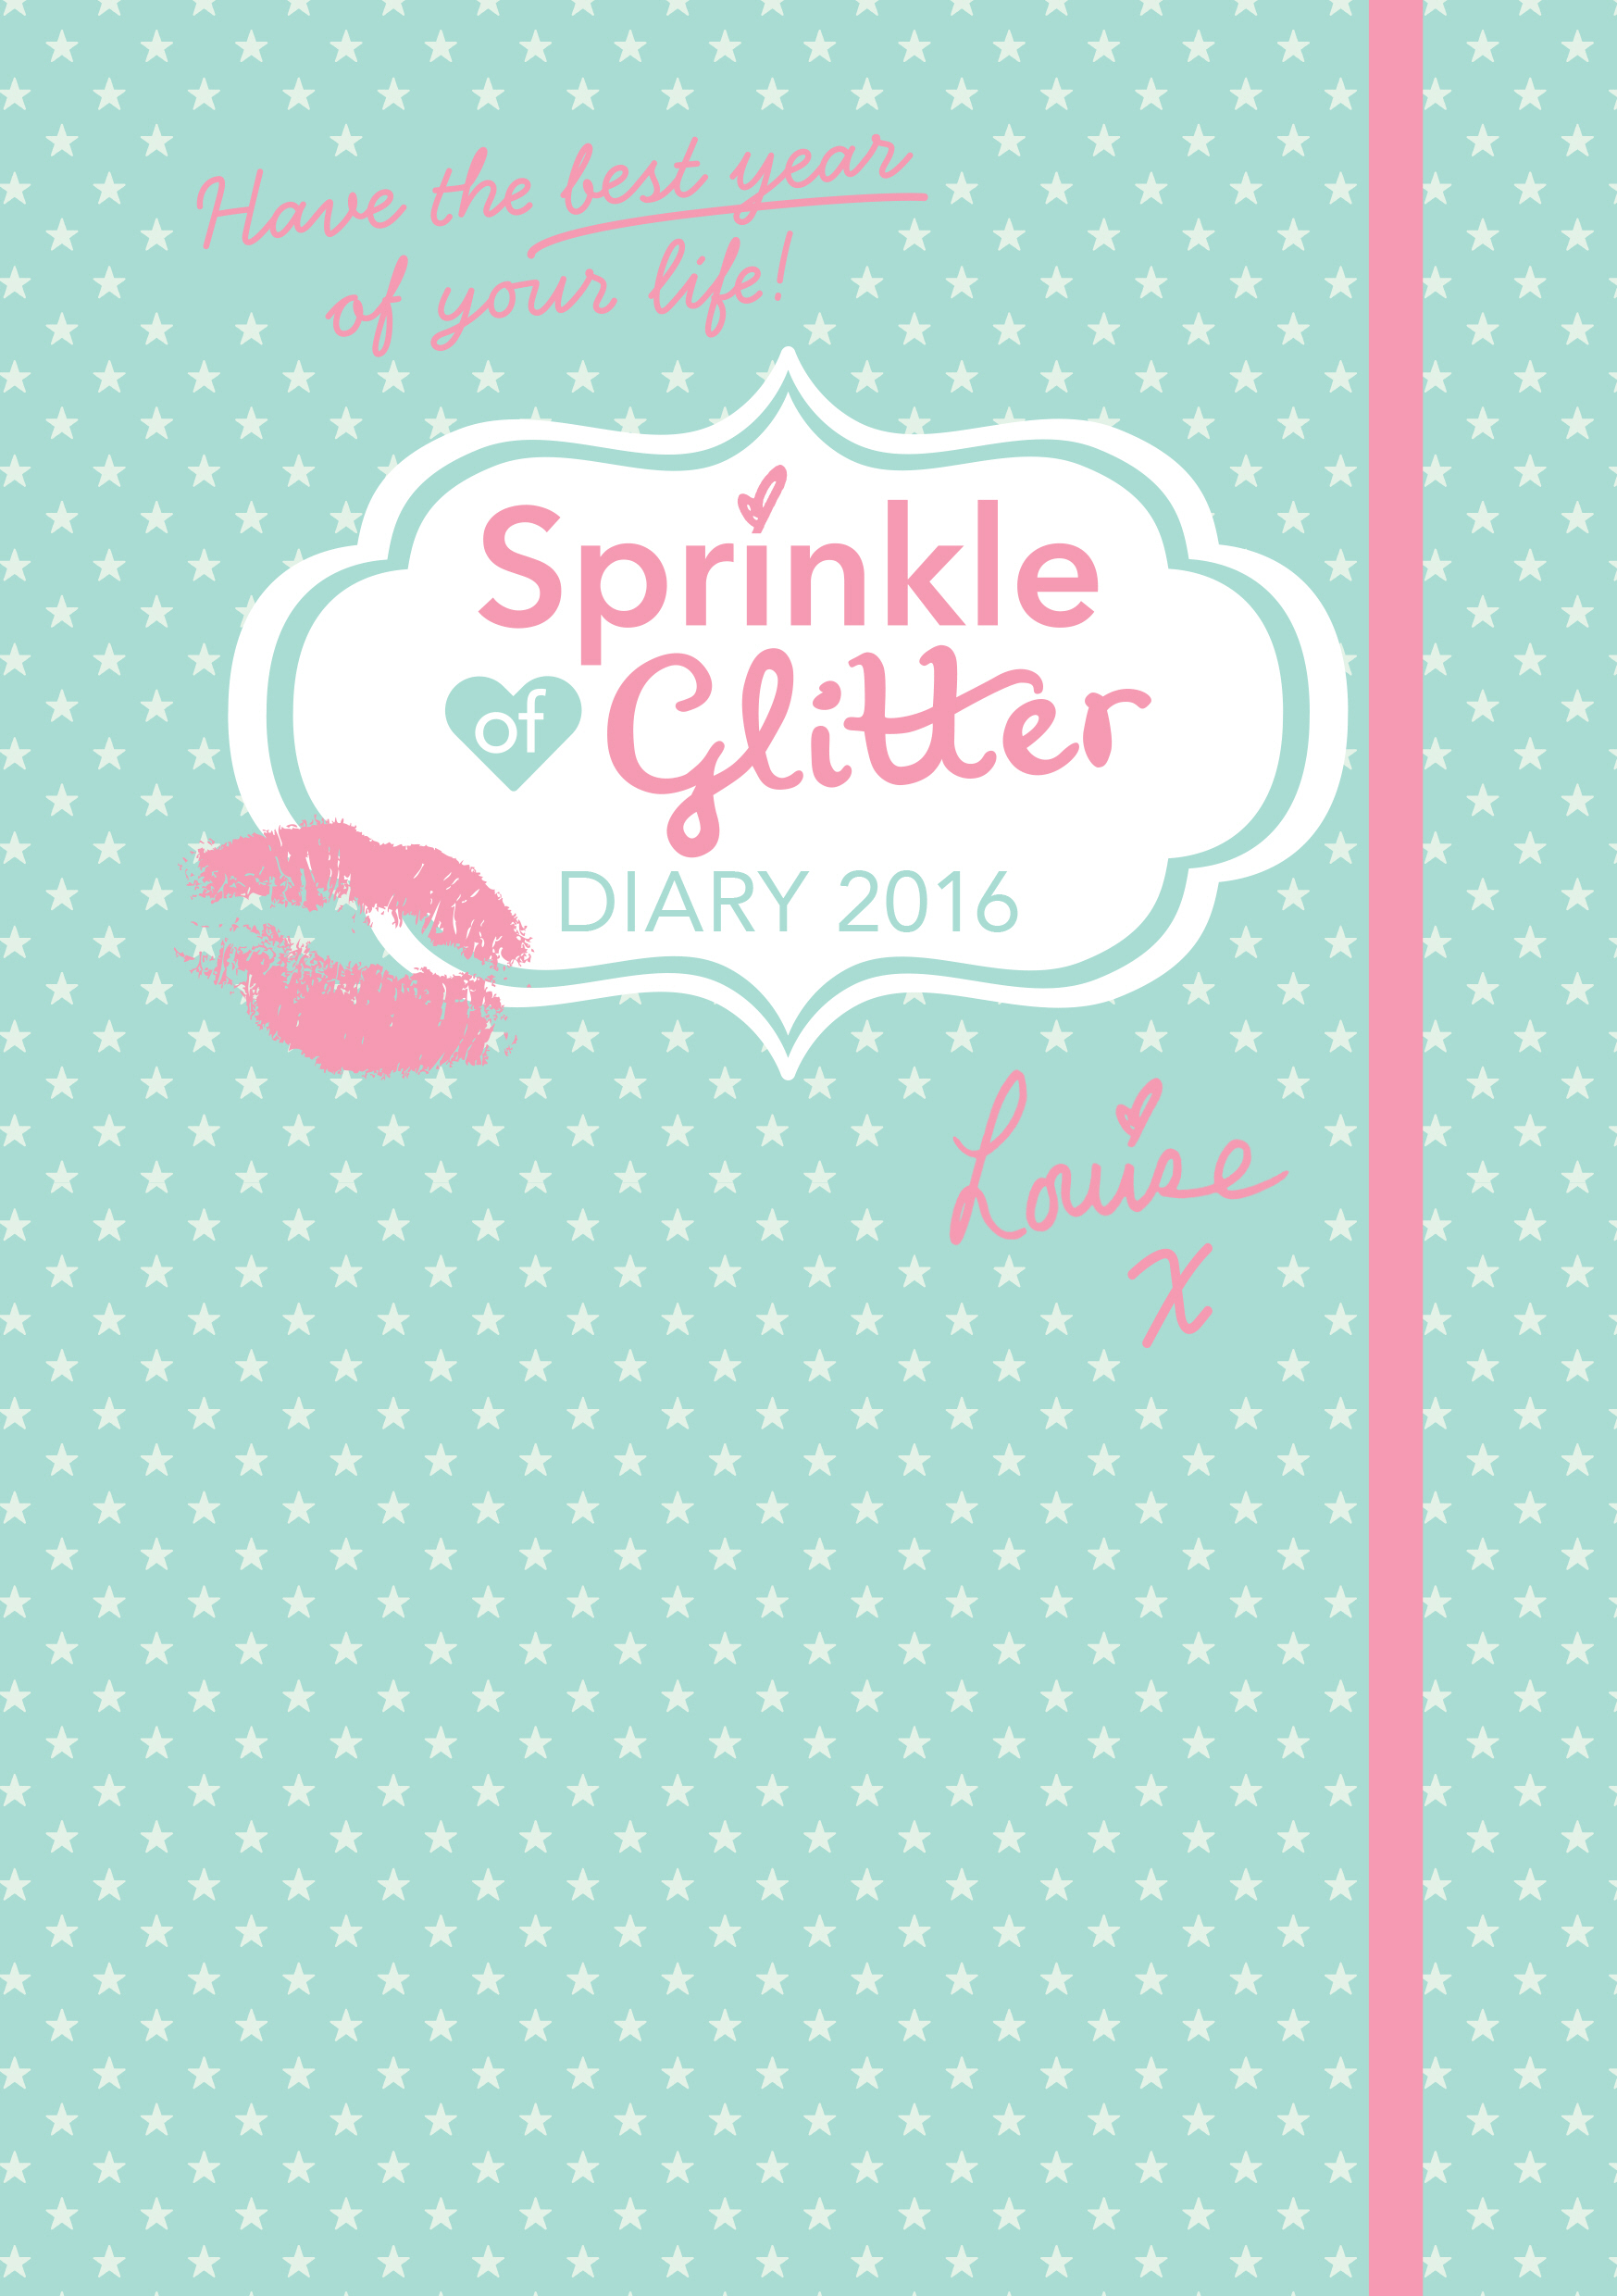 Sprinkle of Glitter: Diary 2016 2018 planner notebook daily kwaii 365 days cute dog weekly monthly planner agenda day plan notebooks journal diary stationery